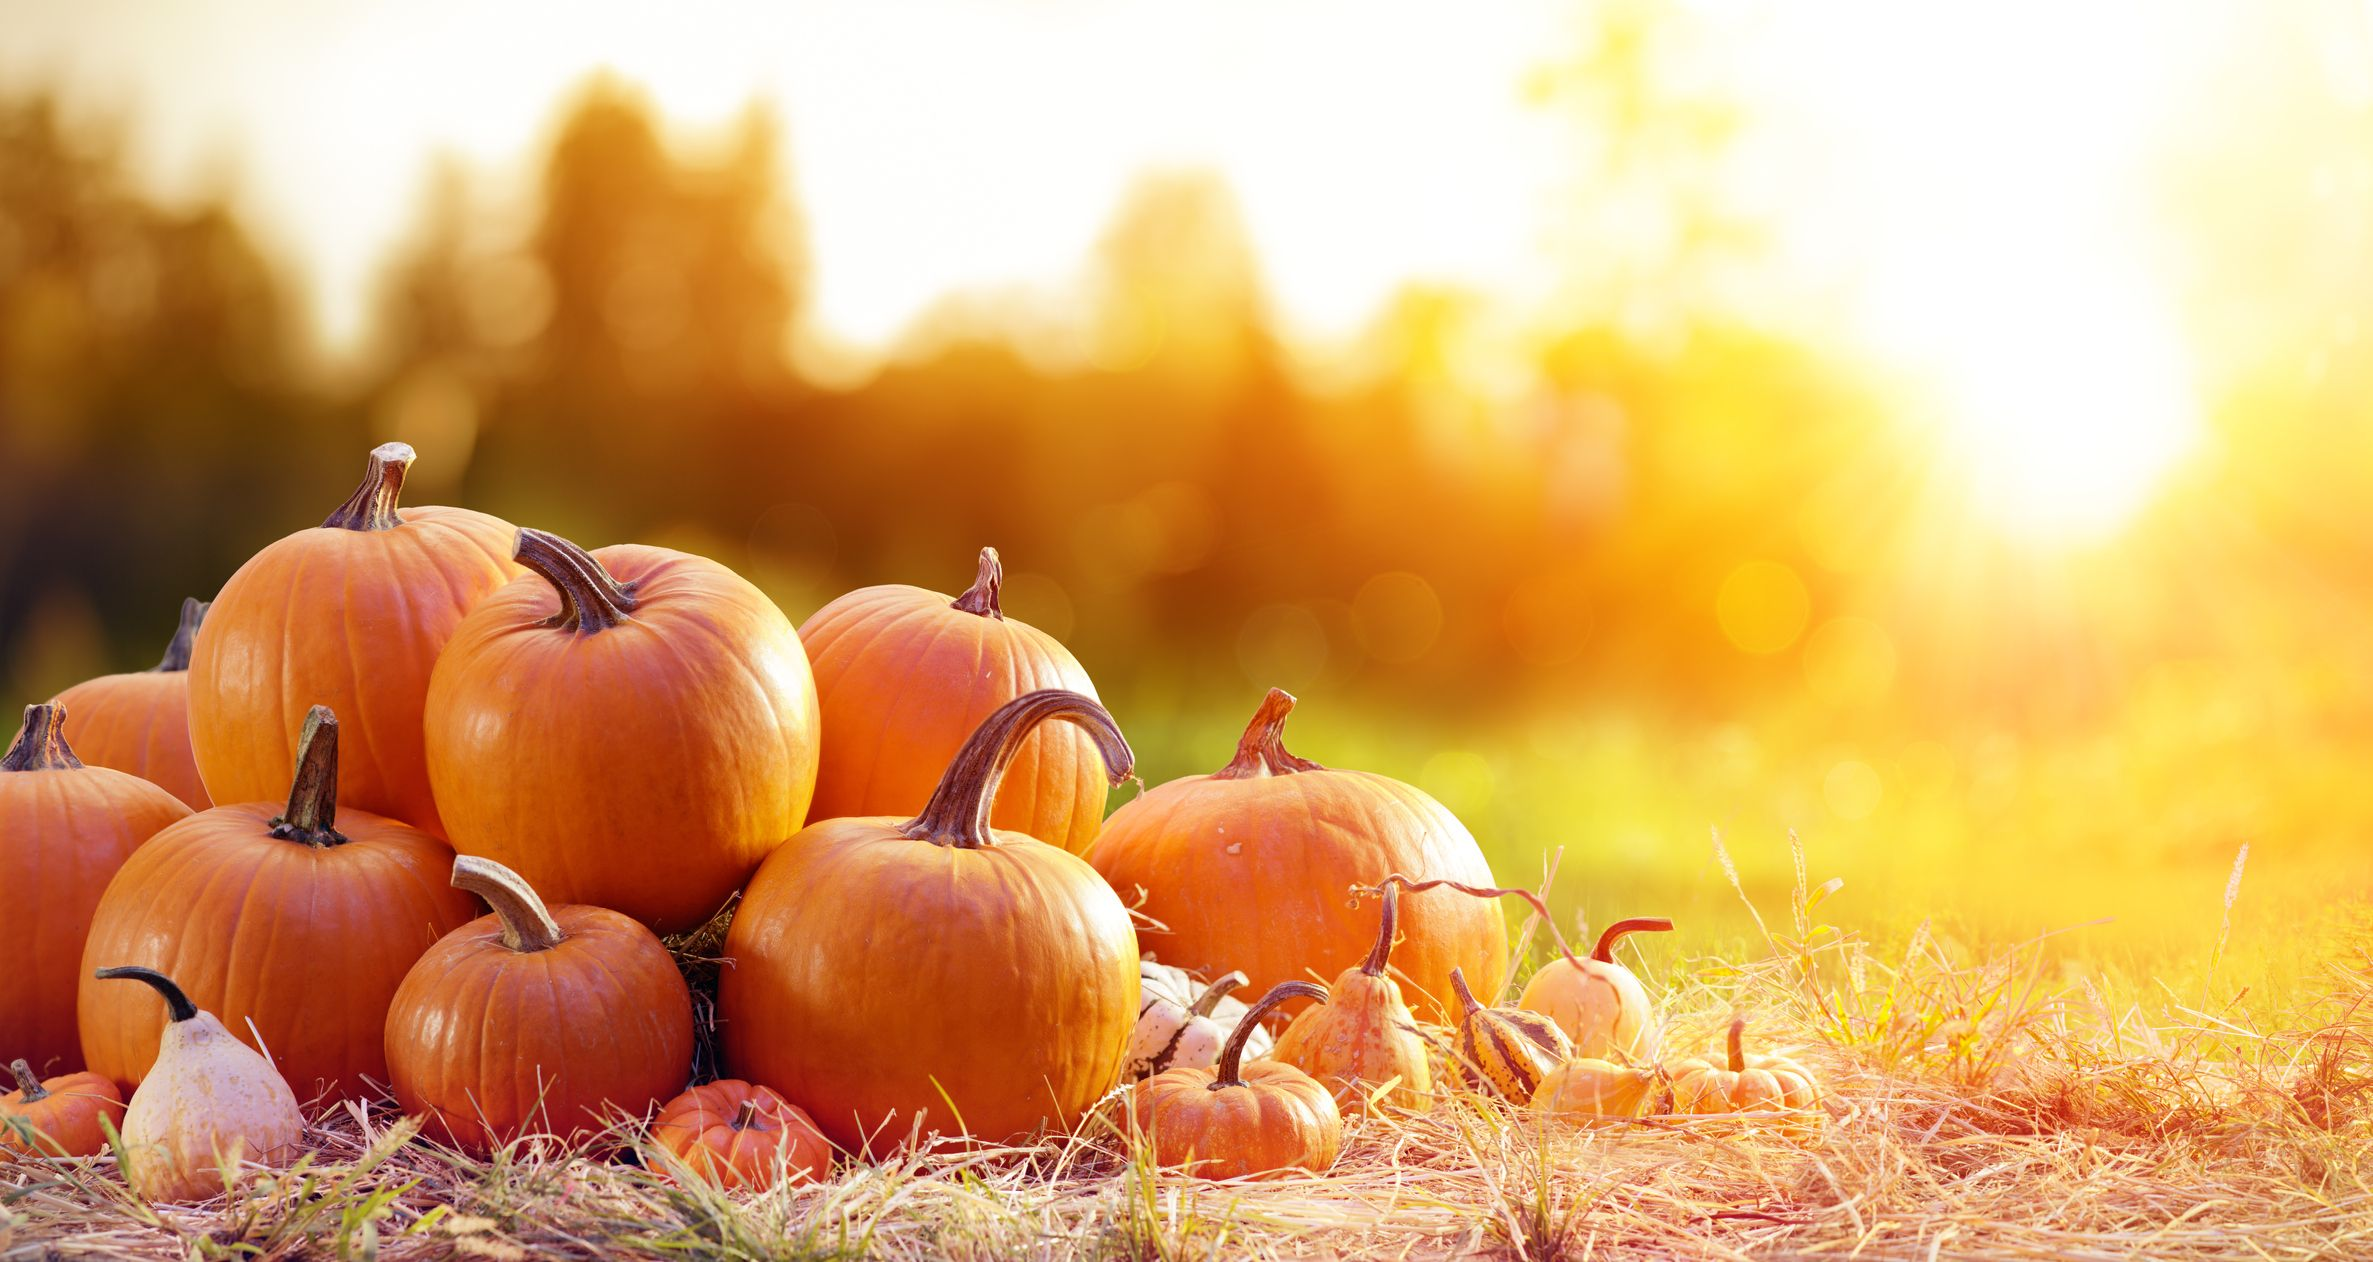 35 Pumpkin Quotes and Puns That Are Fa-Boo-Lous